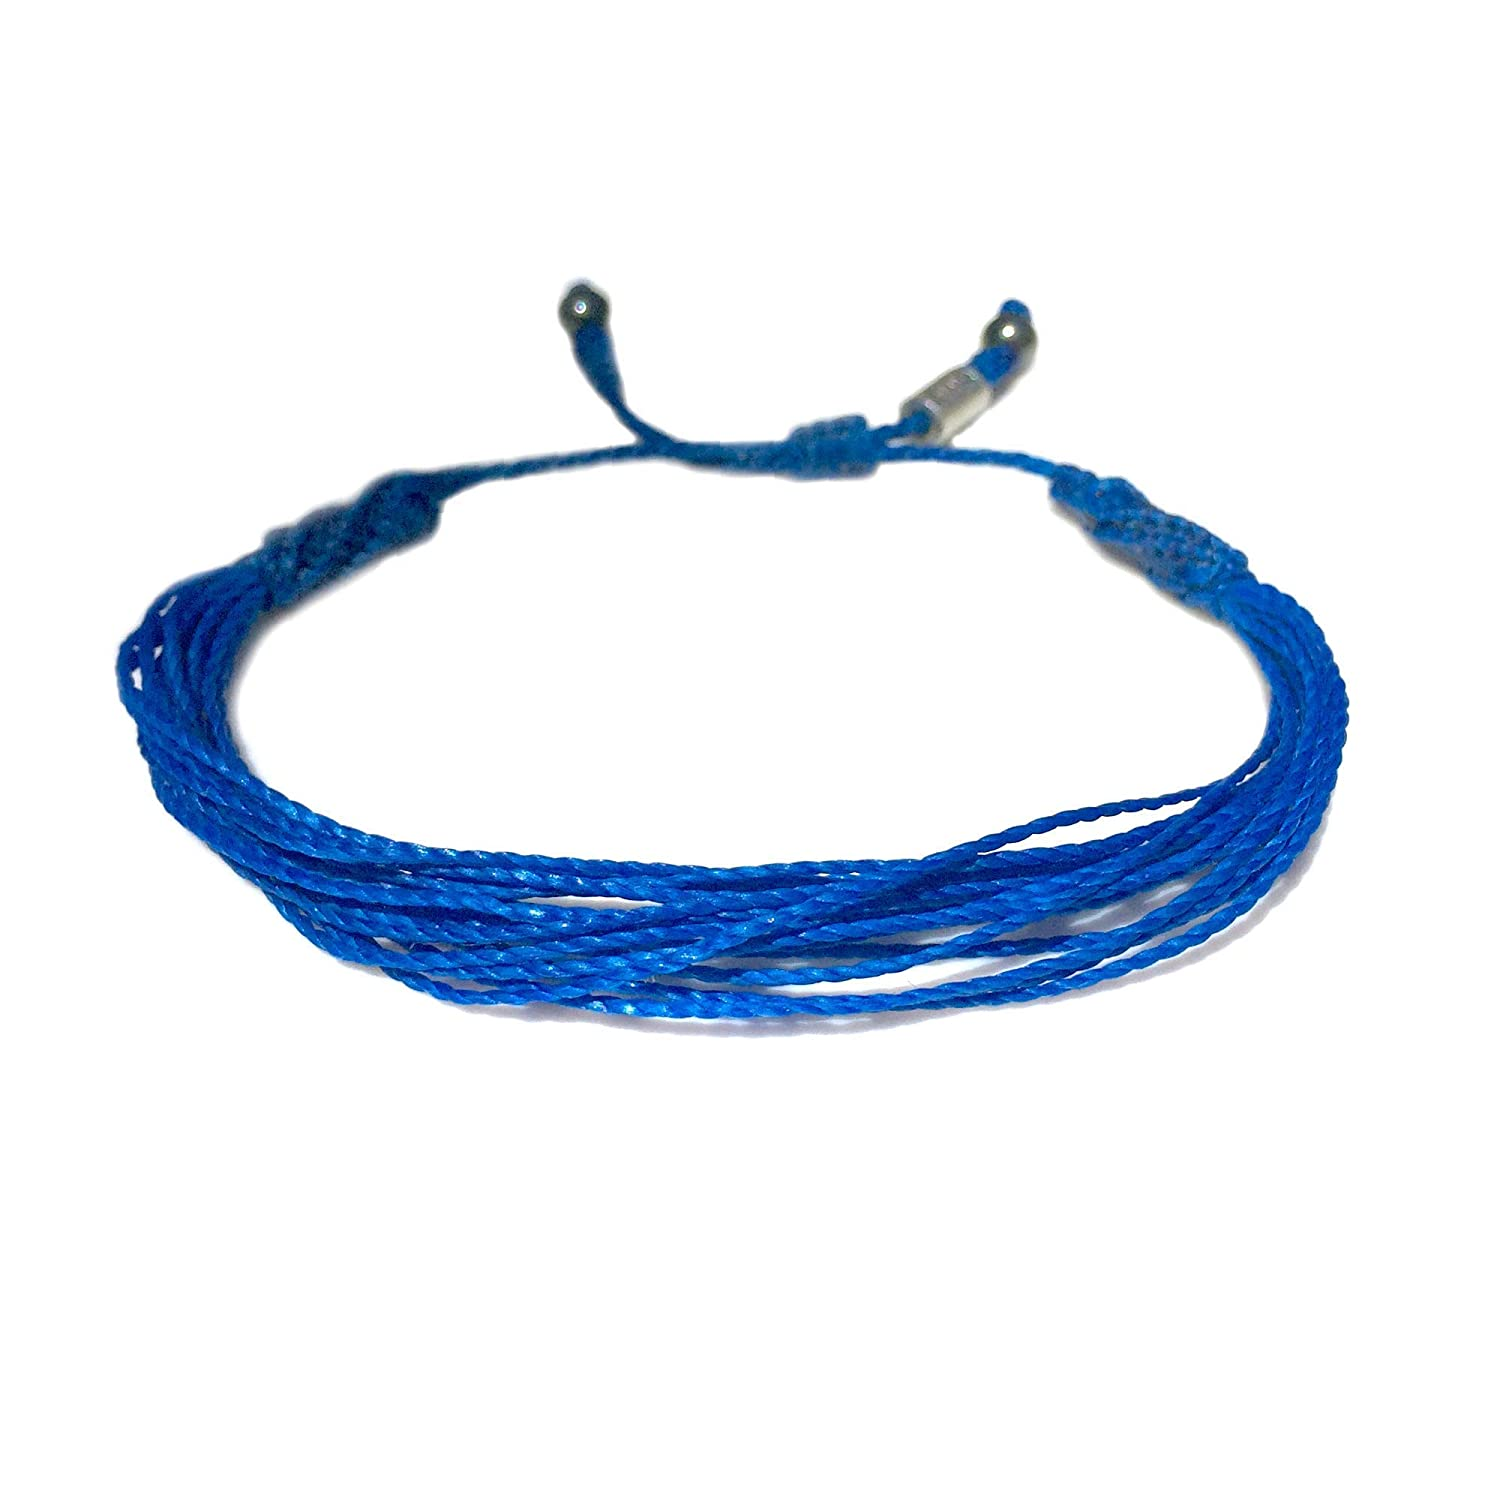 Amazon Com Rumi Sumaq Blue Awareness Bracelet Adjustable Cord String For Alopecia Anti Bullying Huntington S Disease Colon Colorectal Cancer Epstein Barr Cause Jewelry Handmade